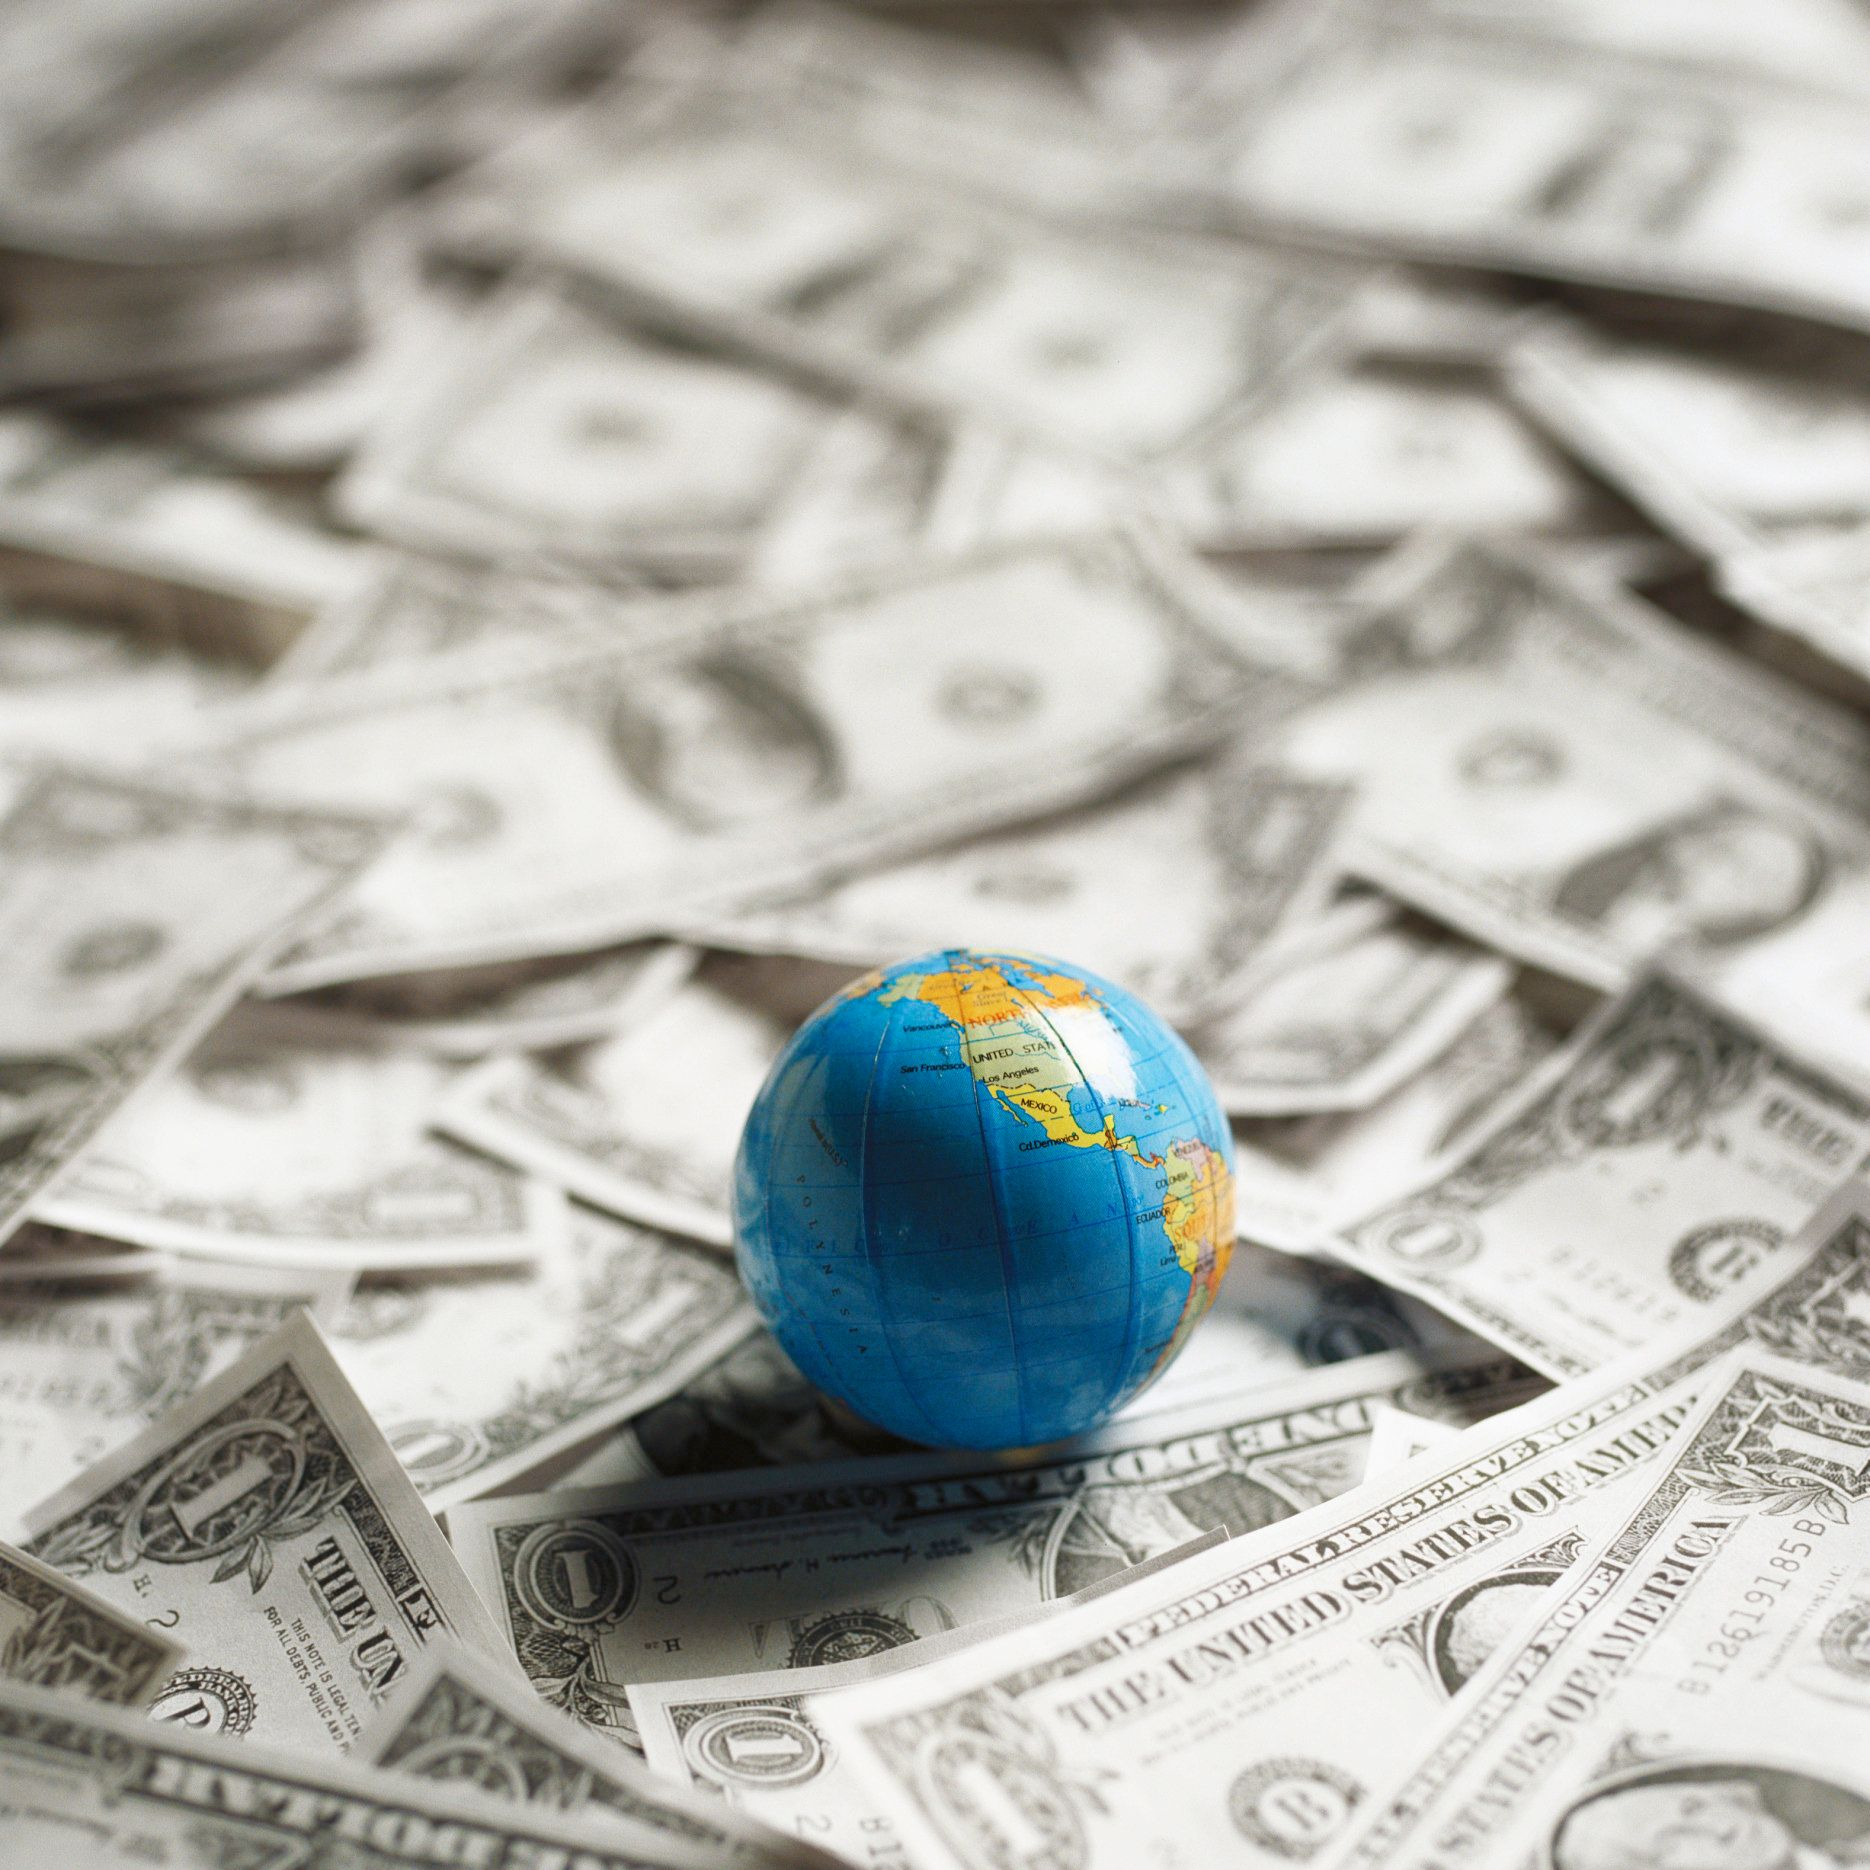 Small world globe on top of U.S. Dollars.